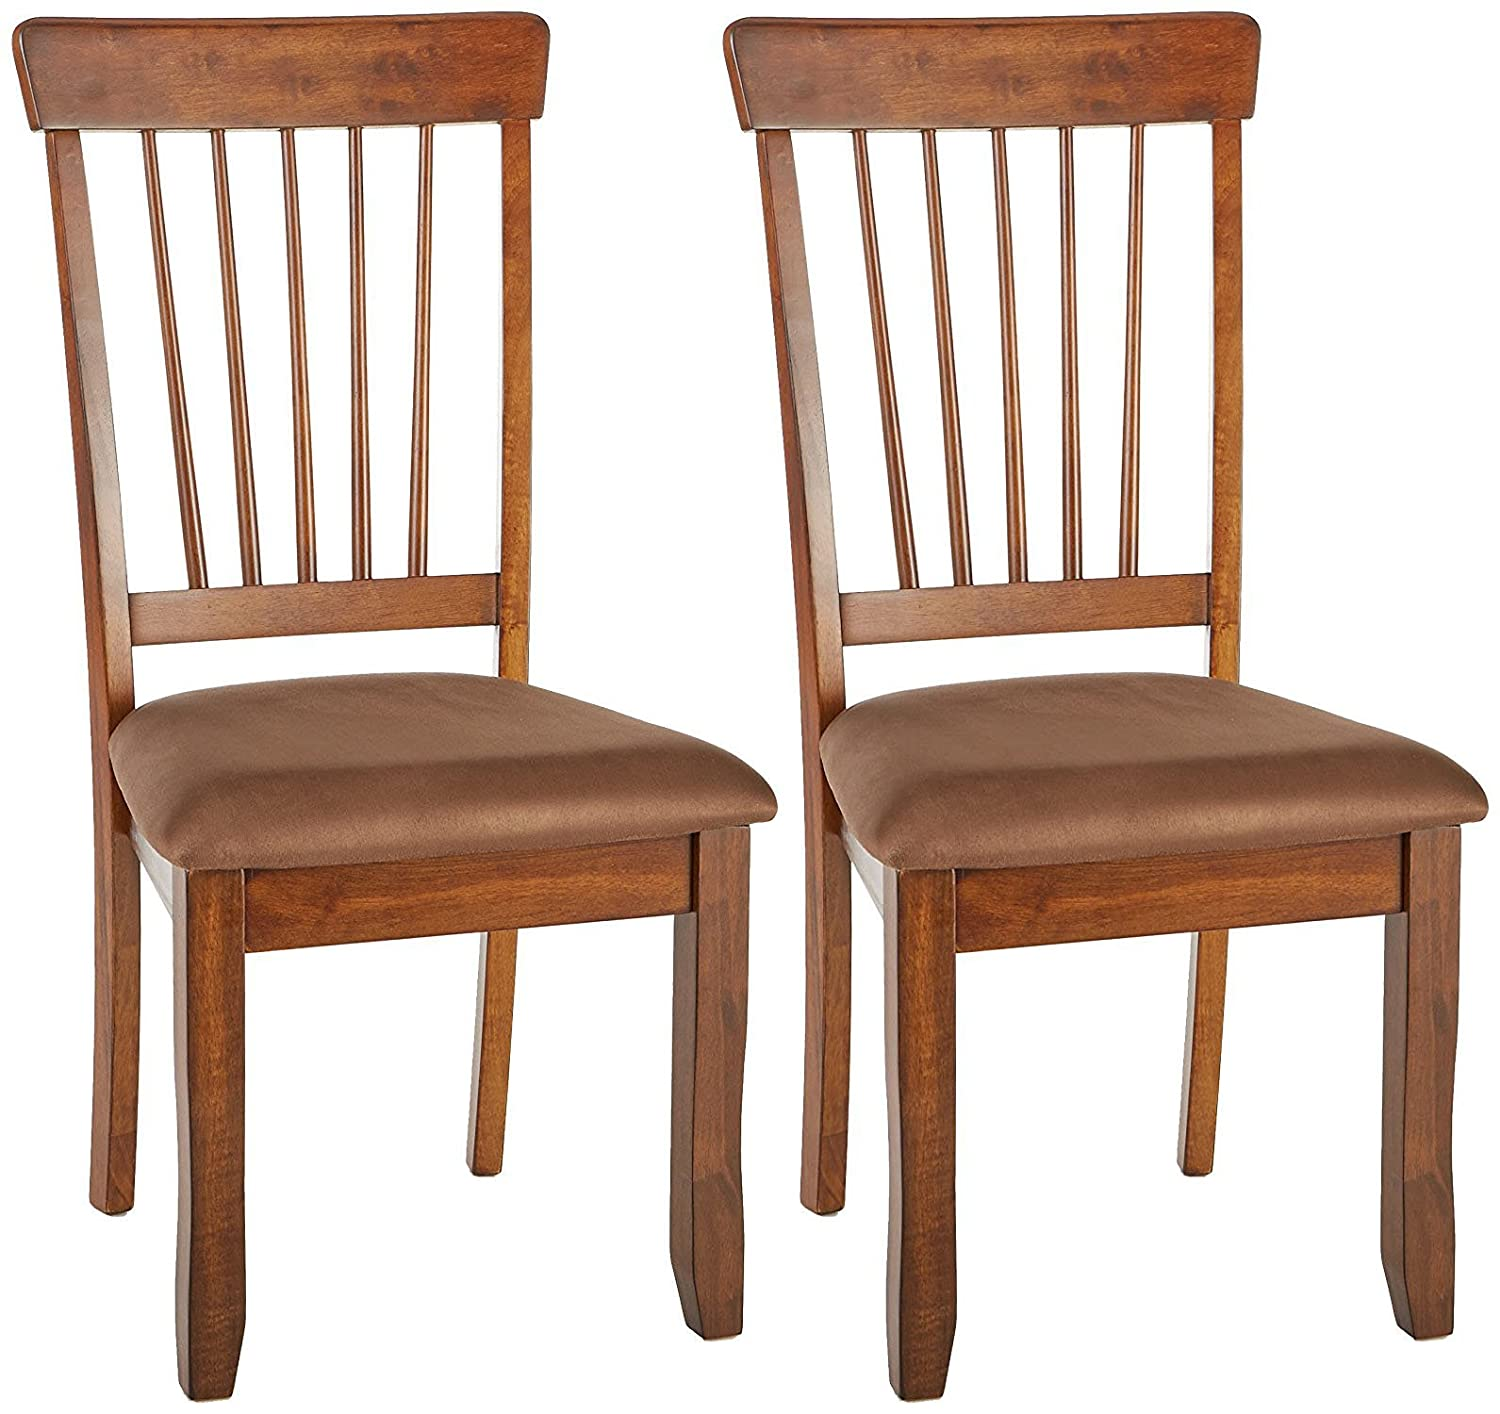 Signature Design by Ashley Furniture-Berringer Dining Room Chair-Set of 2-Casual Style-Rustic Brown D199-01